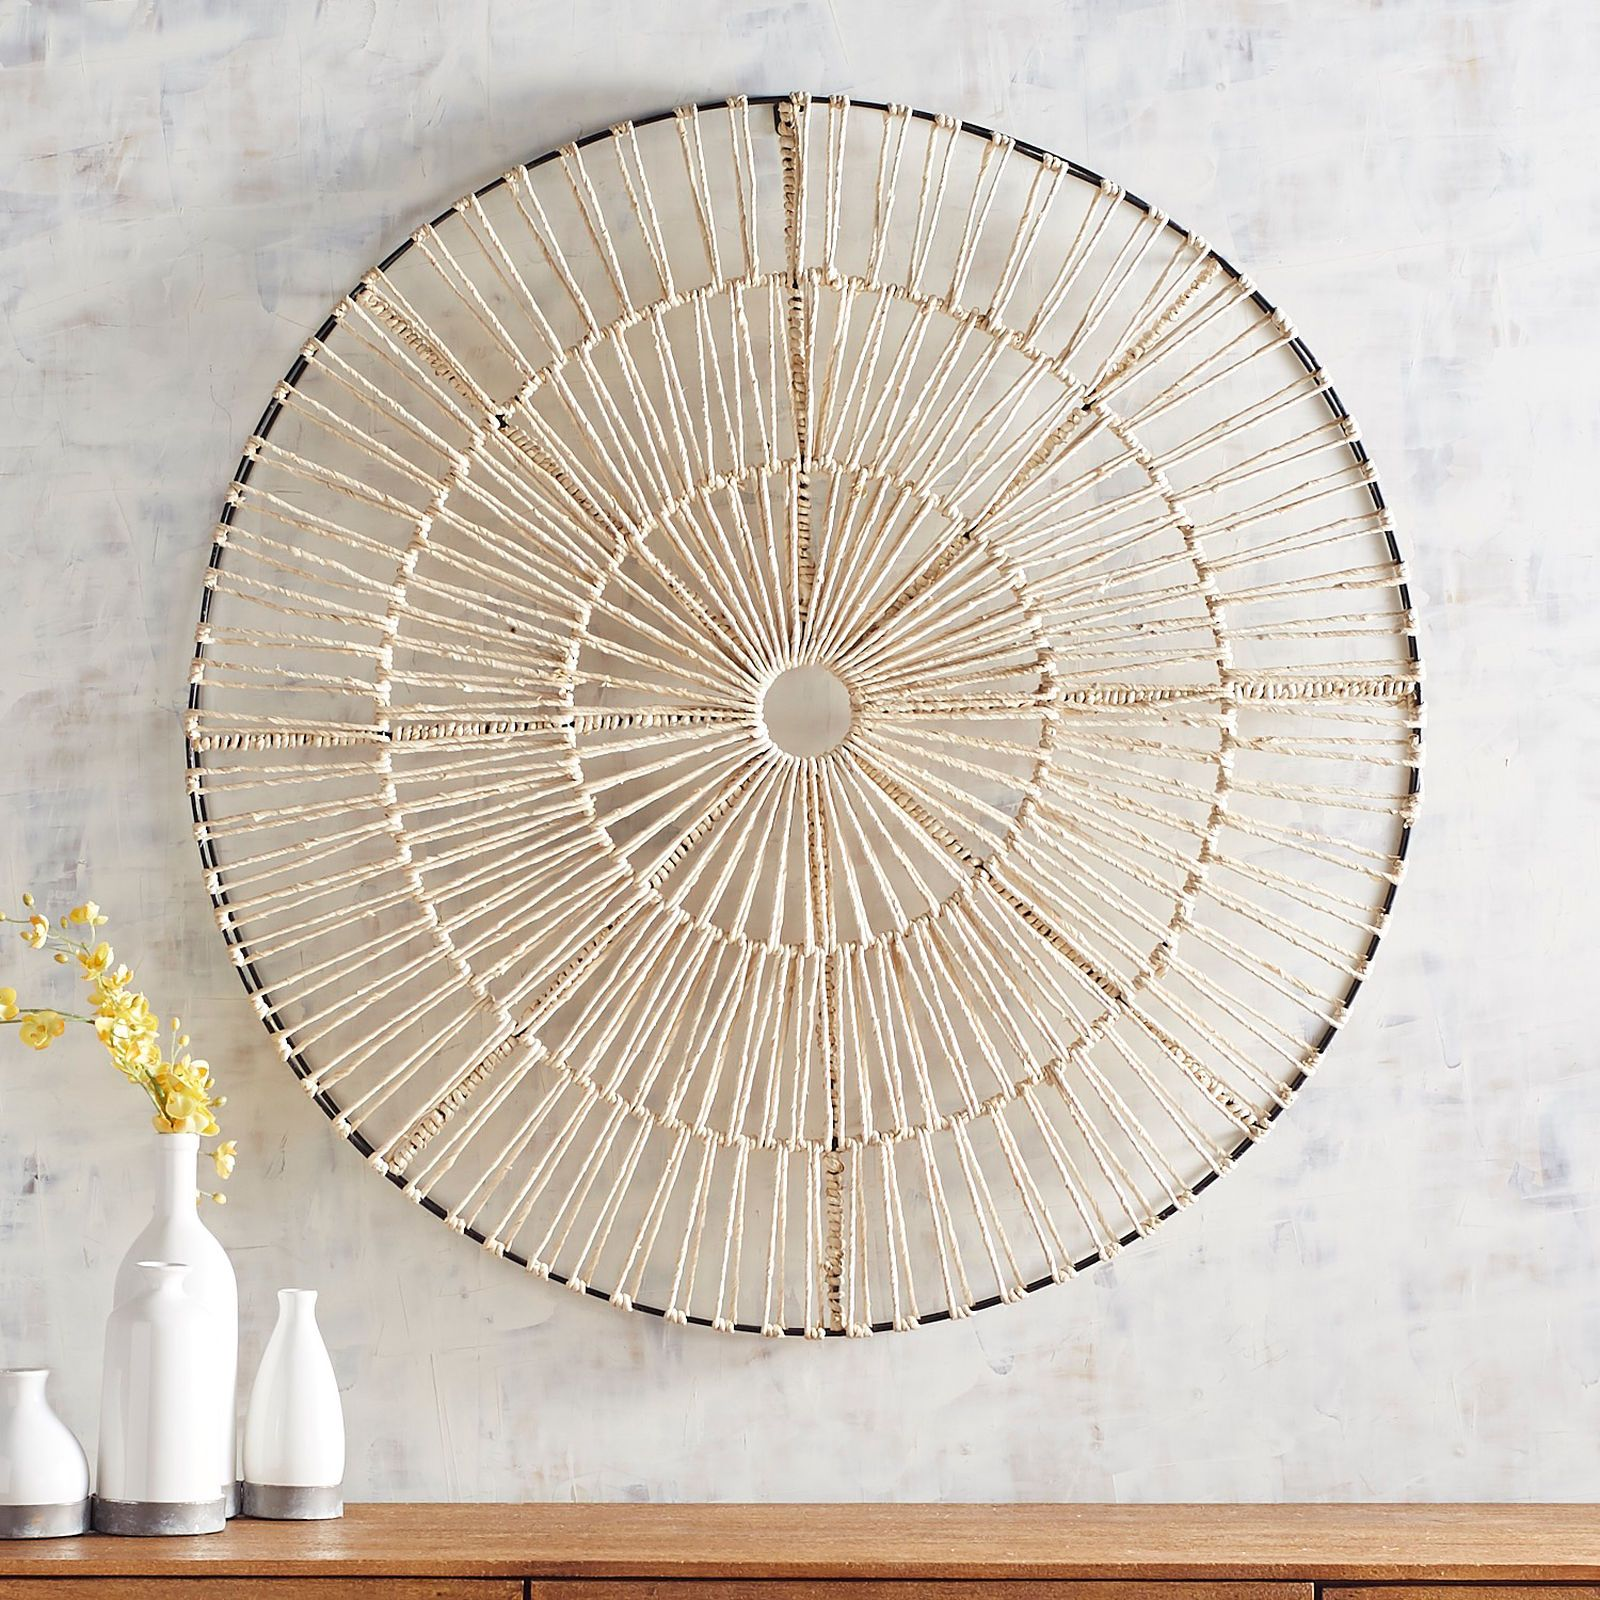 Natural Woven Round Wall Decor Pier 1 Imports Wall Sculpture Art Round Wall Art 3d Wall Art